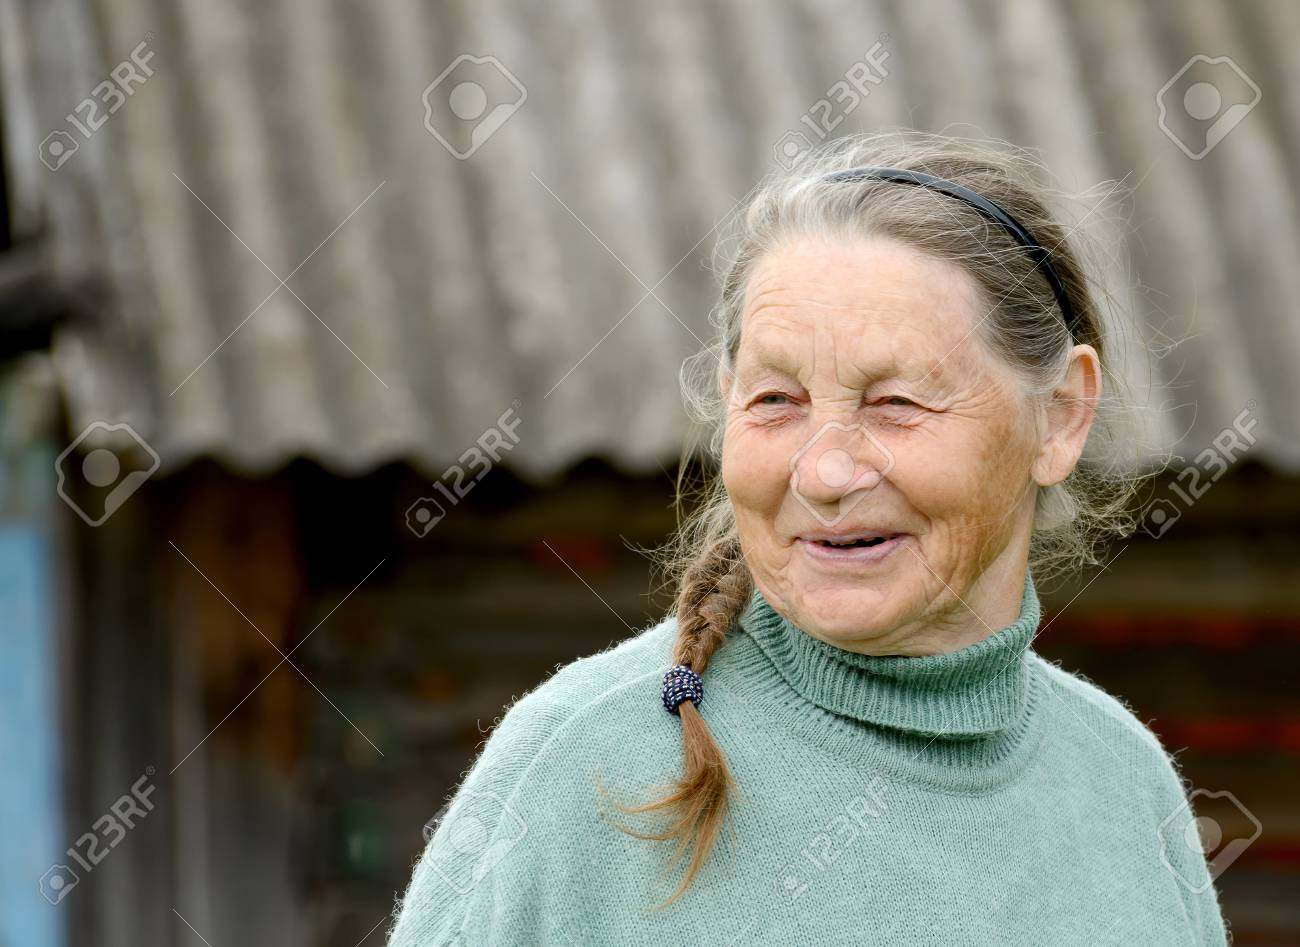 Portrait of smiling elderly woman outdoors - 81037949